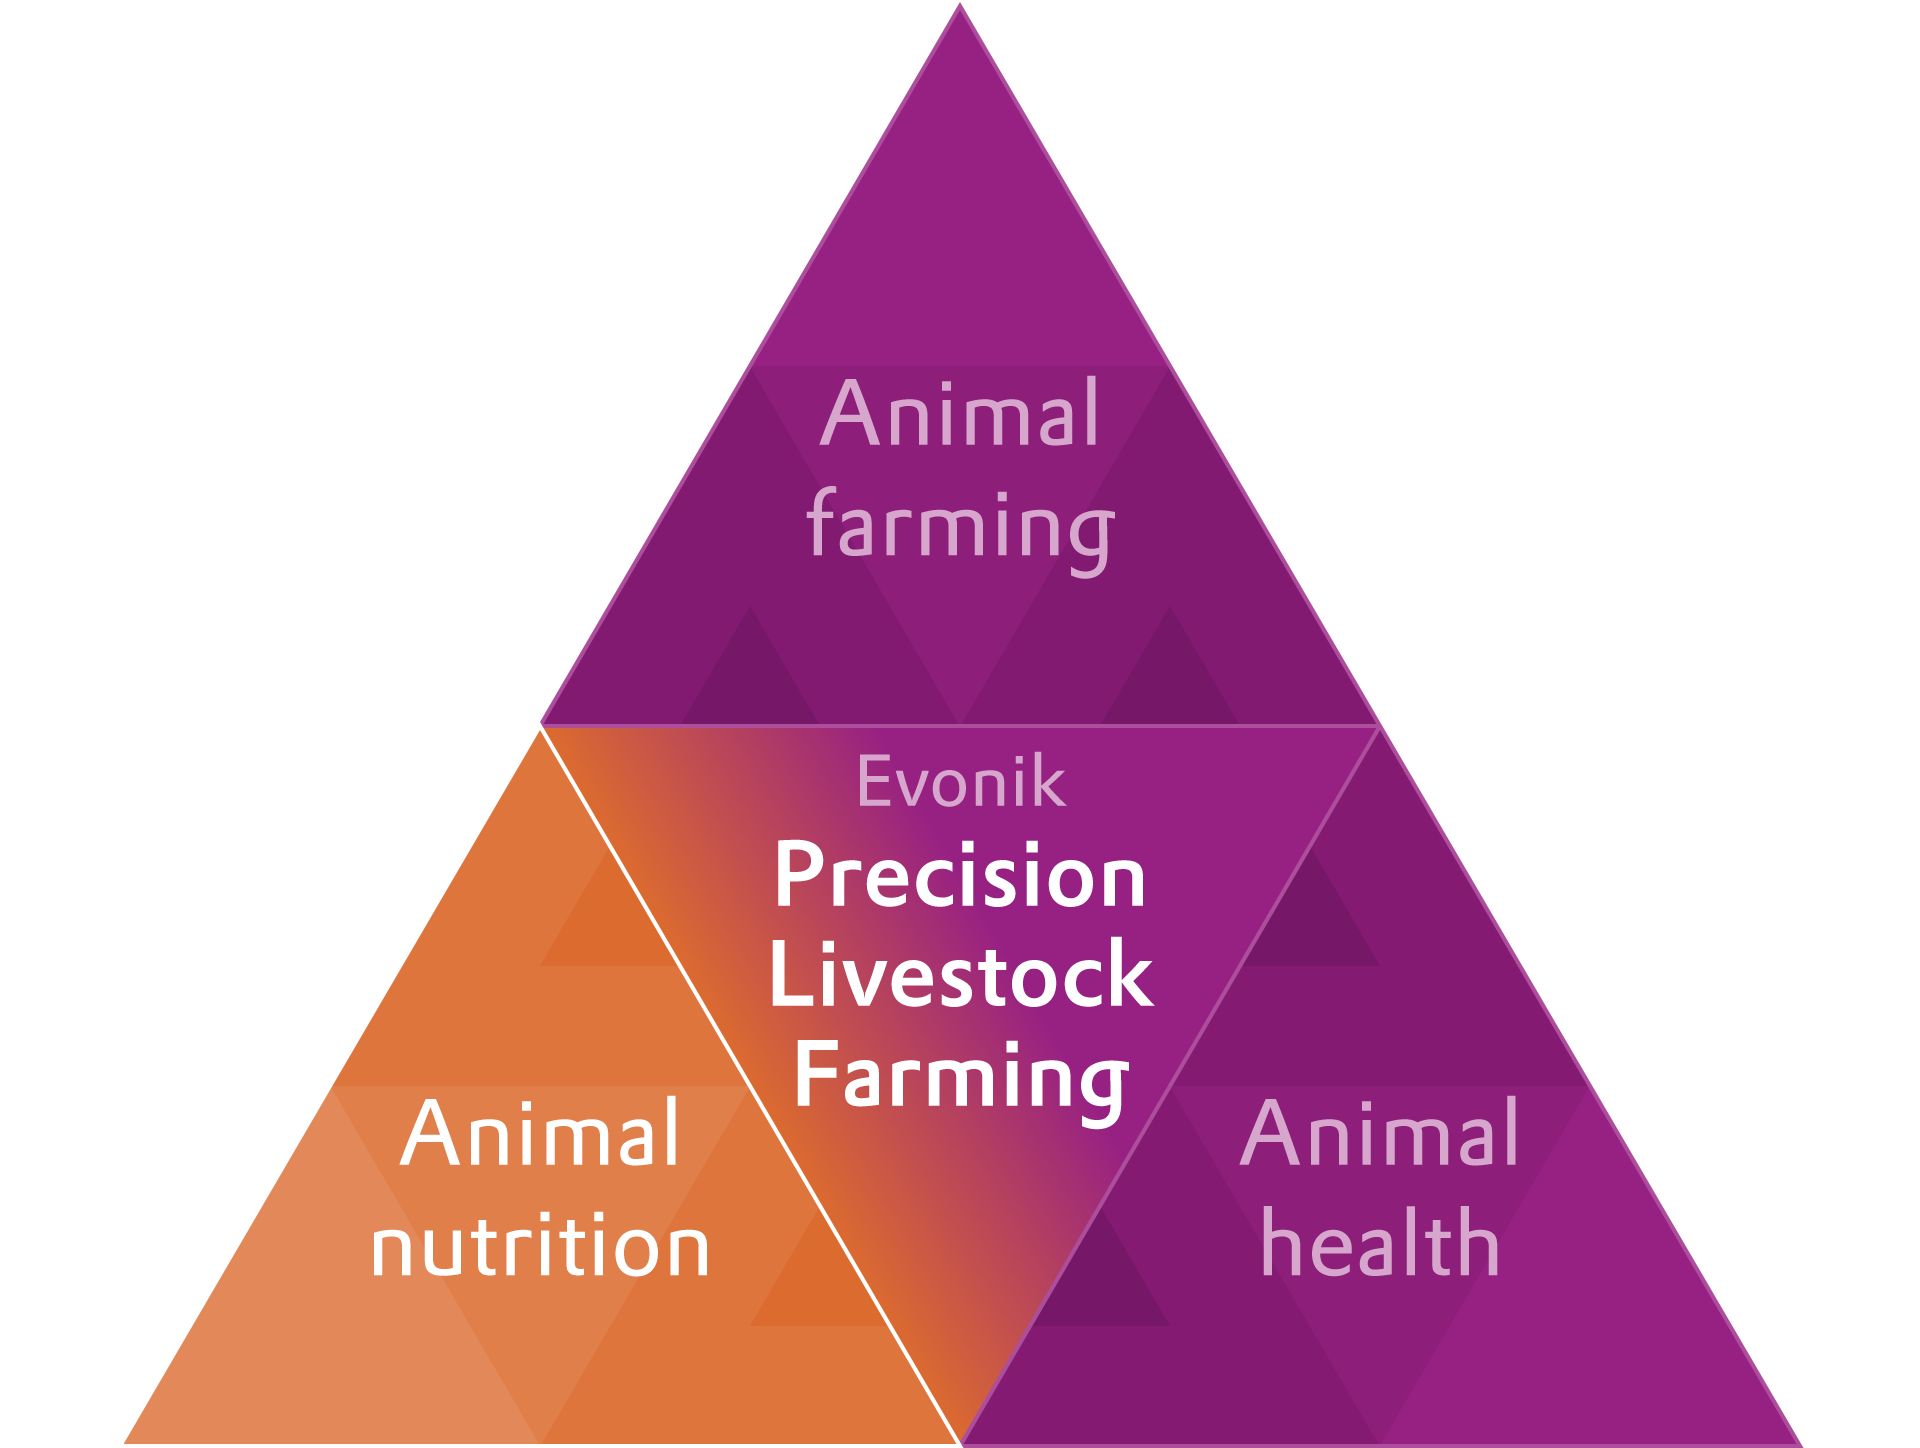 Evonik PLF drives feed quality for healthier animals